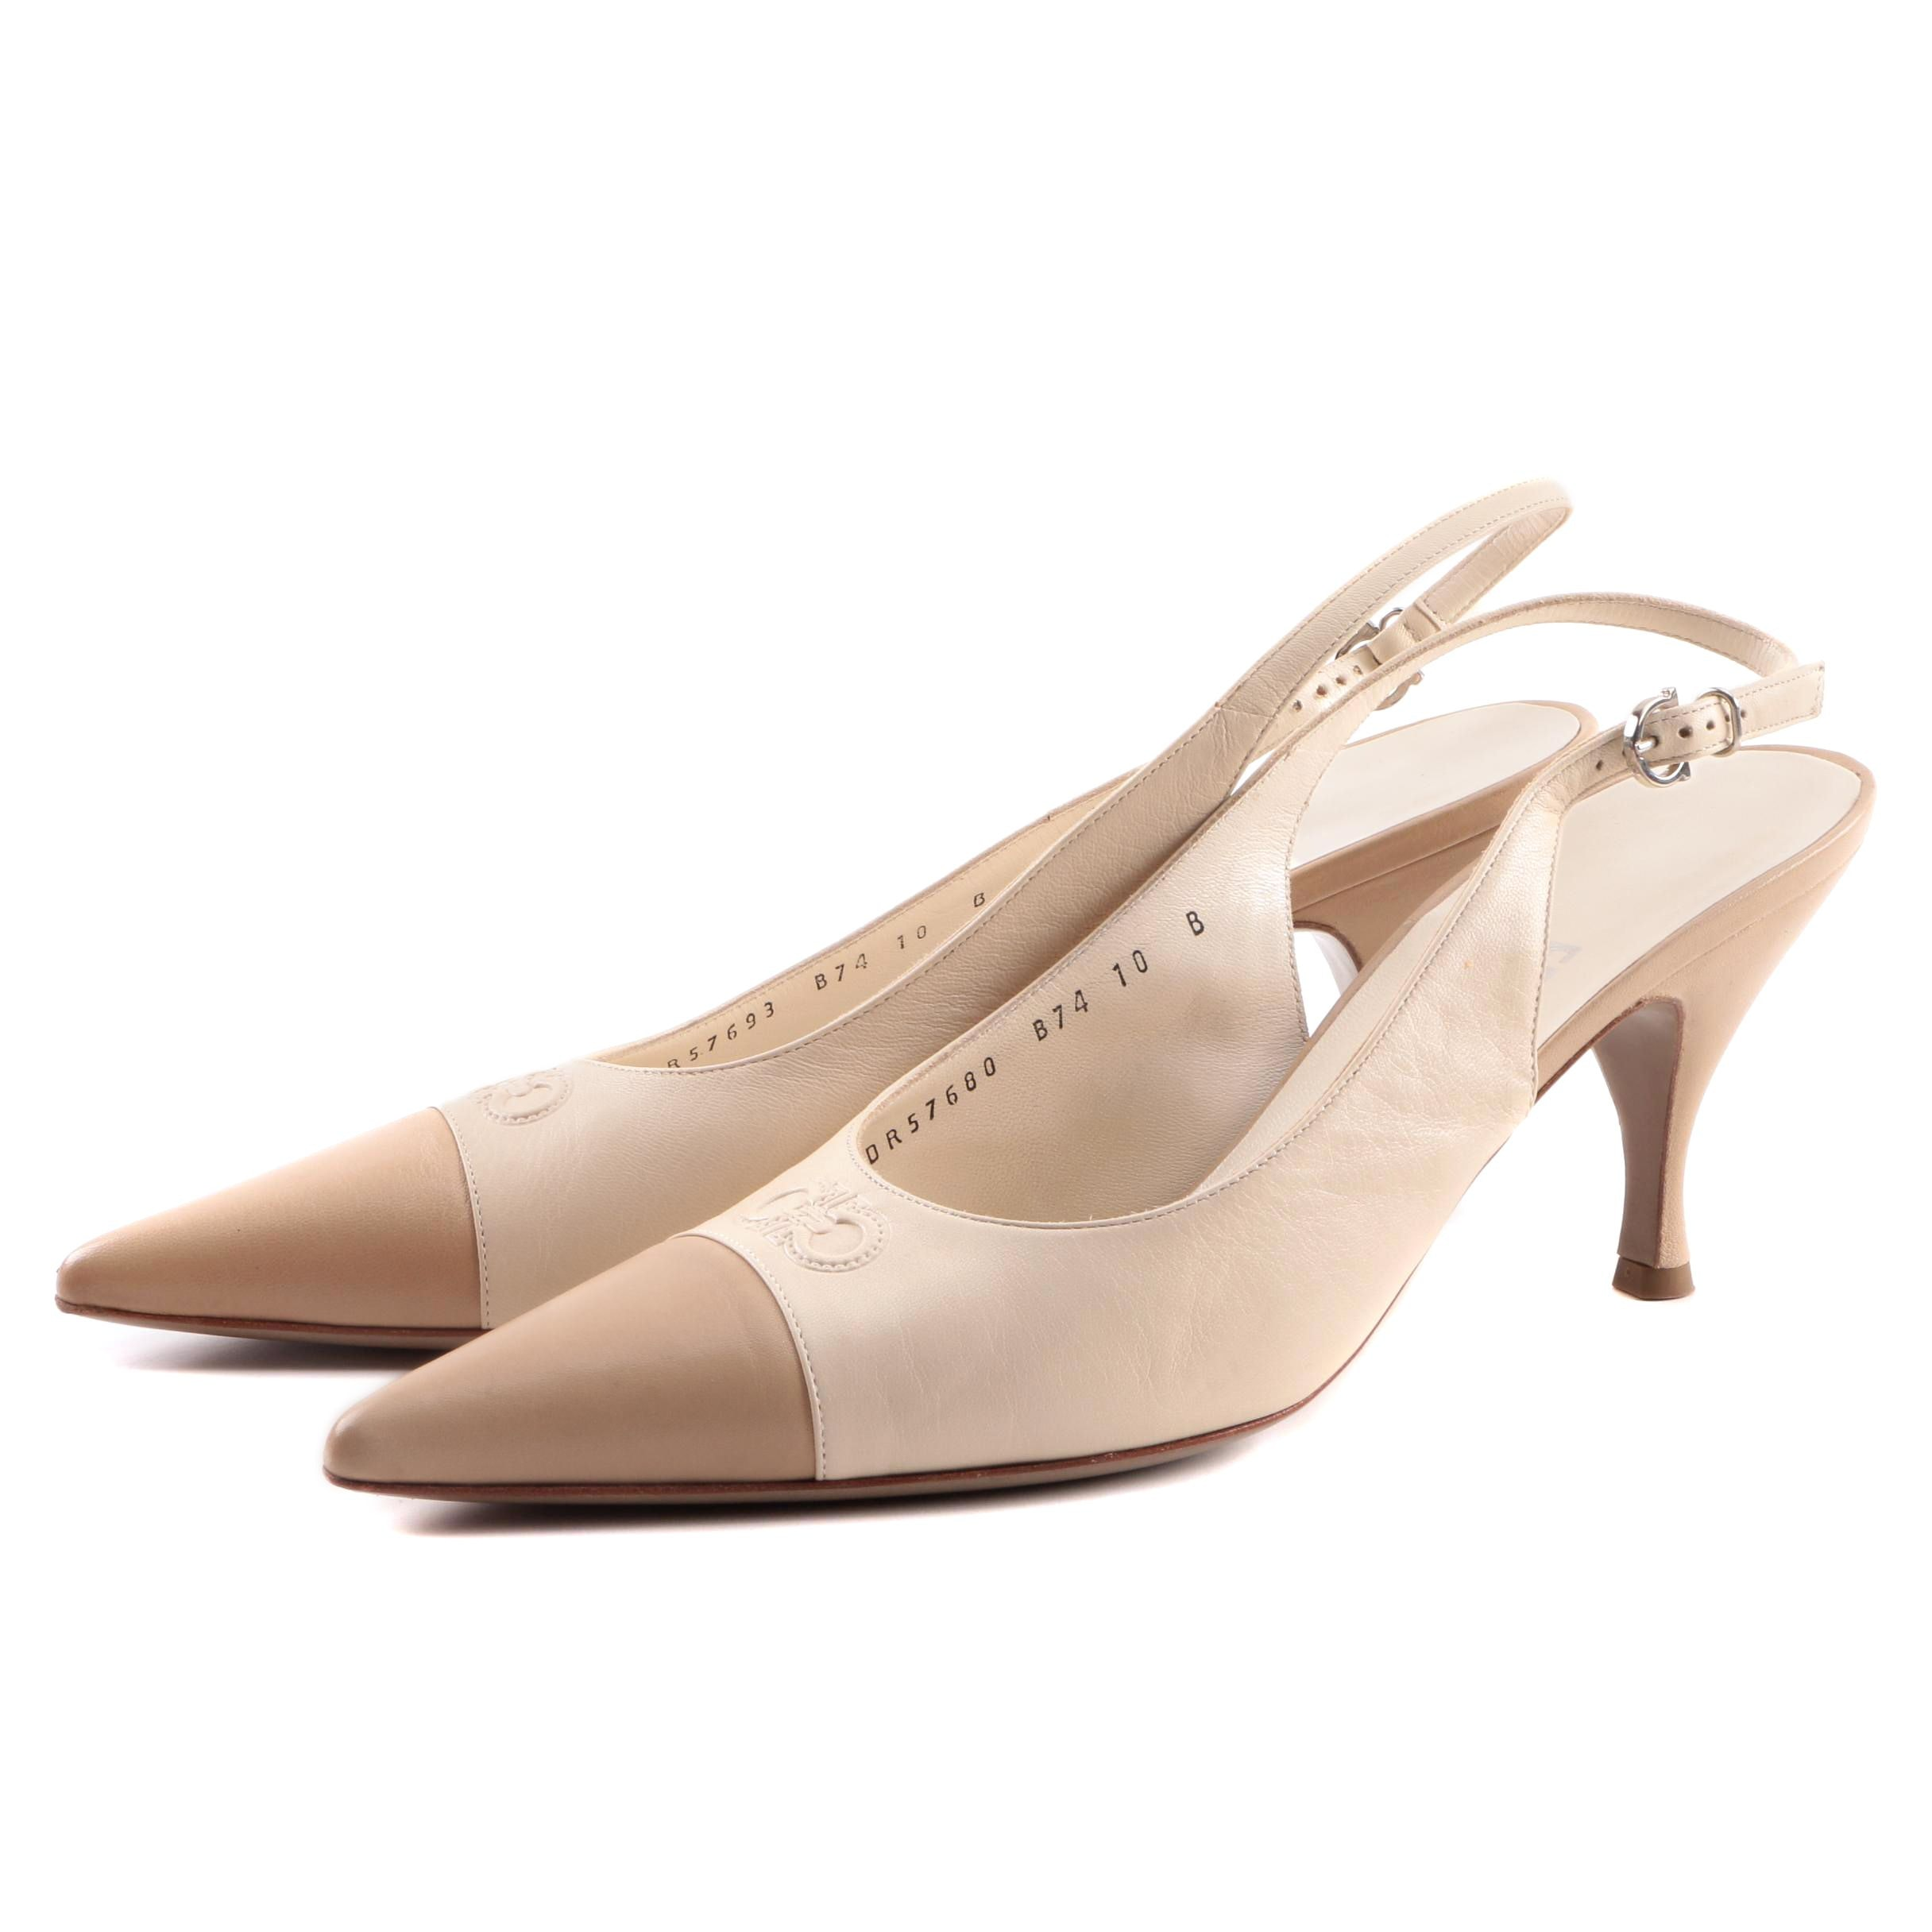 Salvatore Ferragamo Carisa Kid Leather Slingback Pumps, Made in Italy